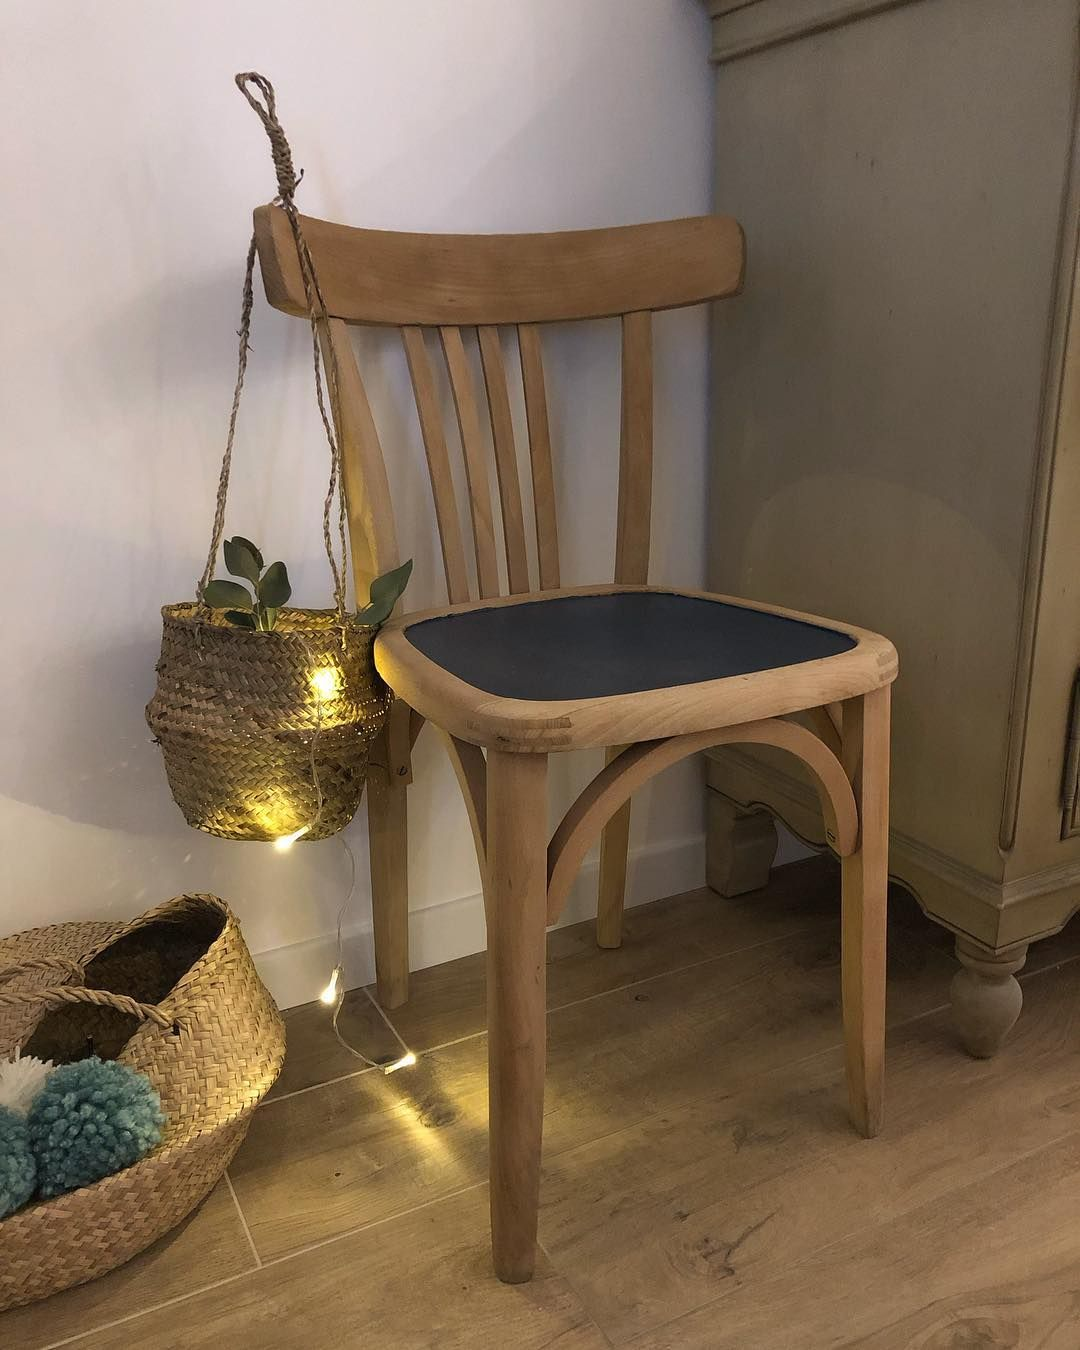 Ne Seconde Vie Pour Cette Chaise Bistrot Decape Puis Repeinte Que Sur La Zone D Assise Une Chaise Unique Chaise Bistrot Relooking De Chaise Customiser Chaise